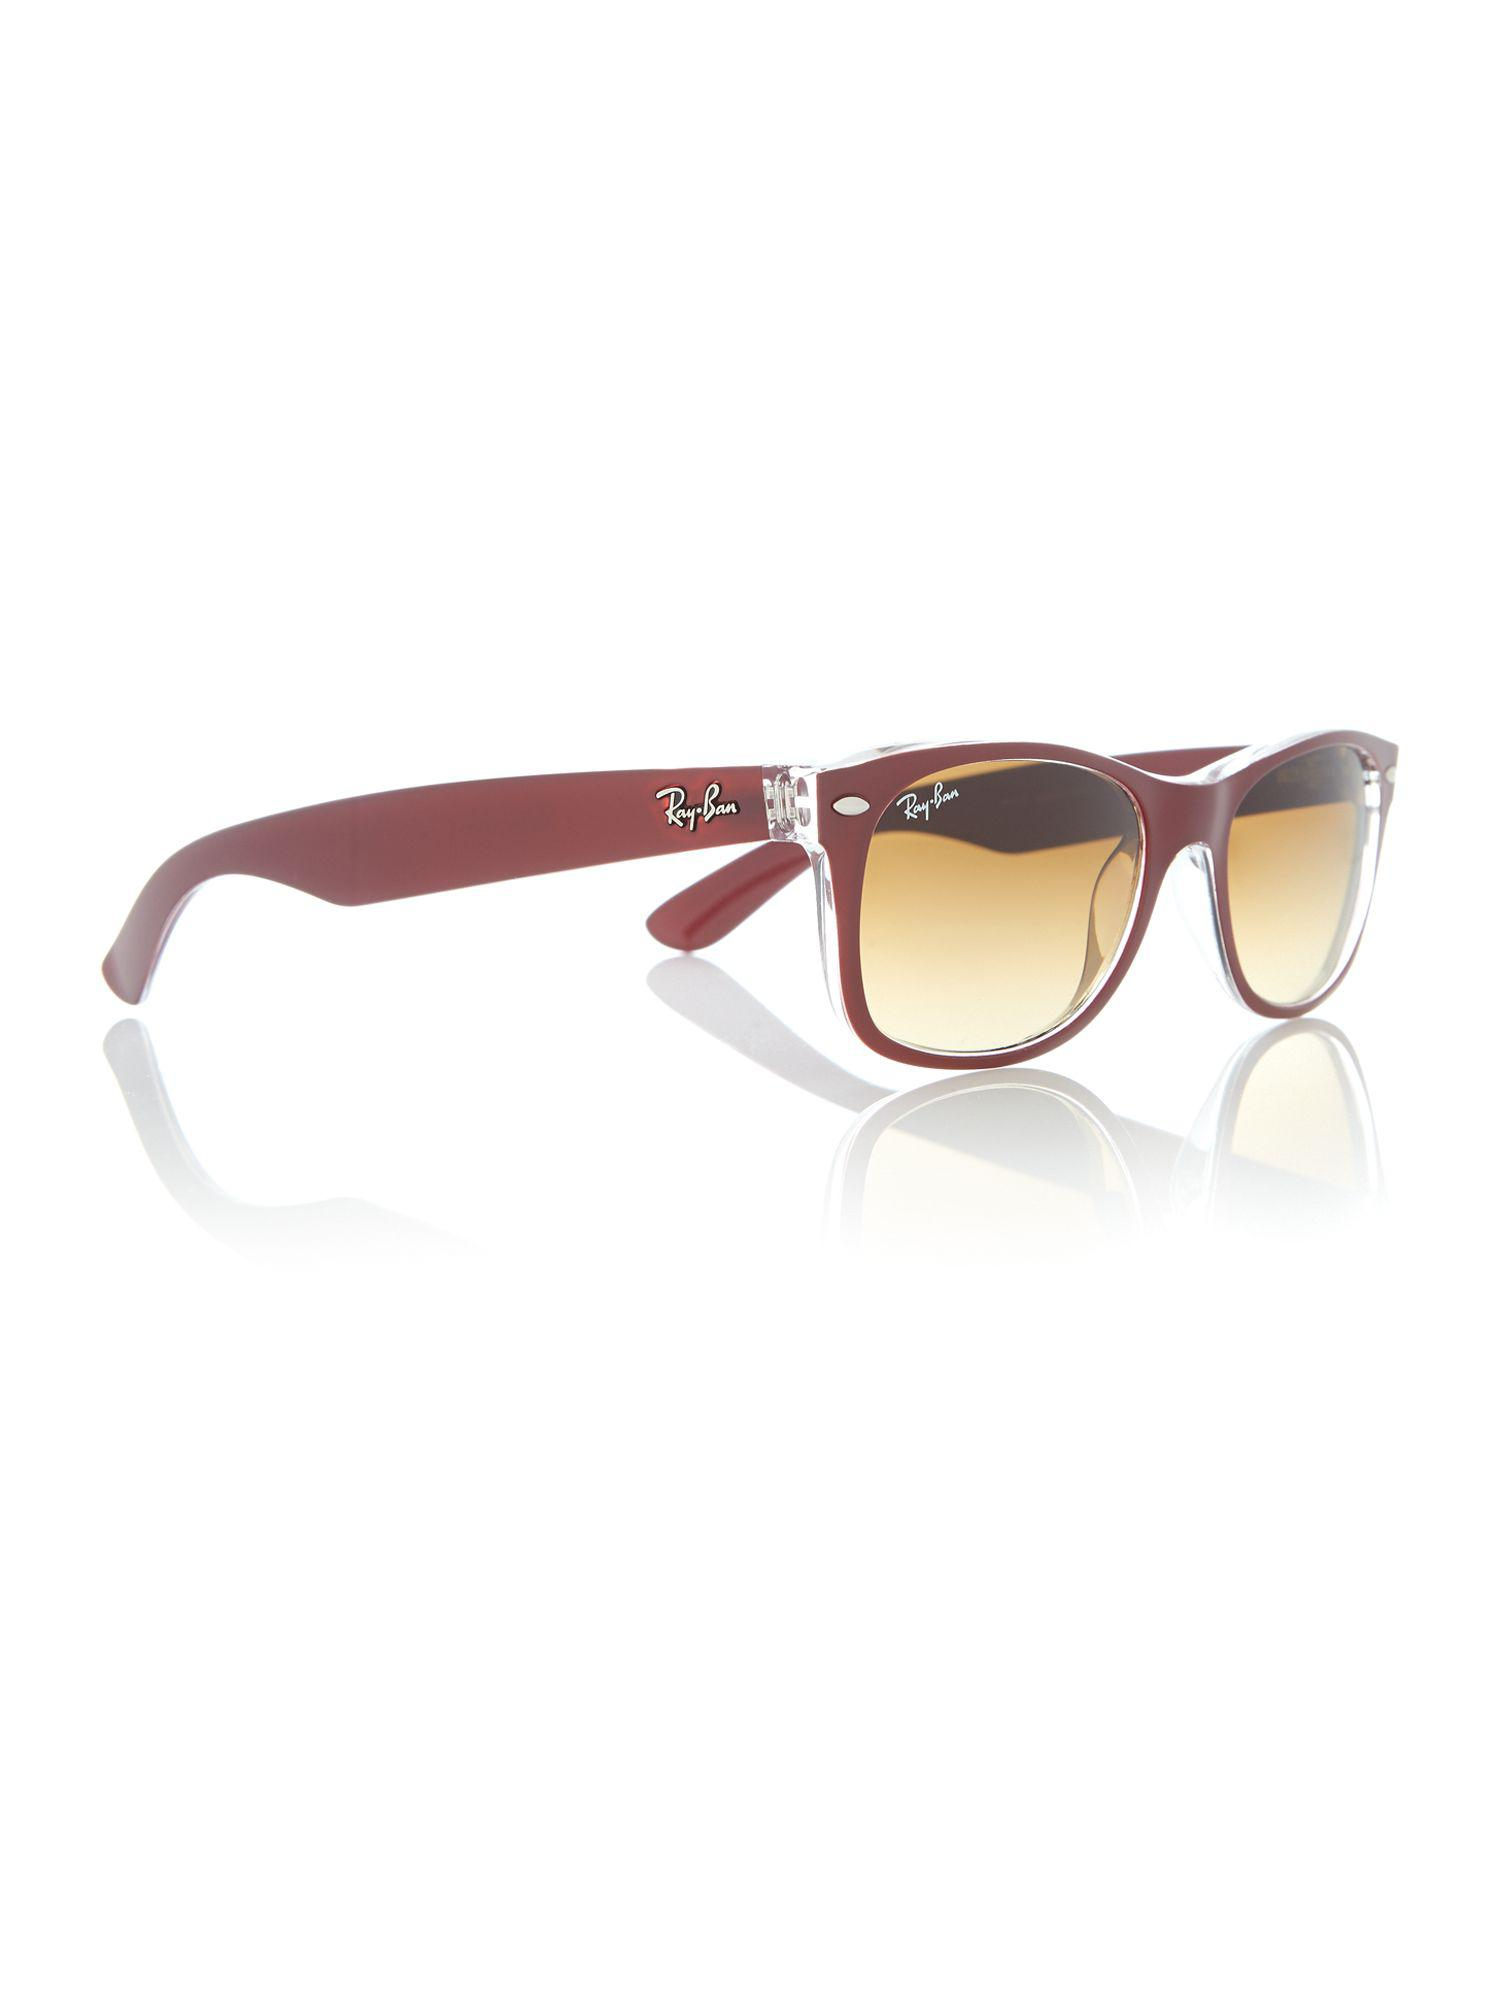 2f540934c6 Red Frame Rb2132 Ray Ban New Wayfarer Sunglasses Q09 « One More Soul